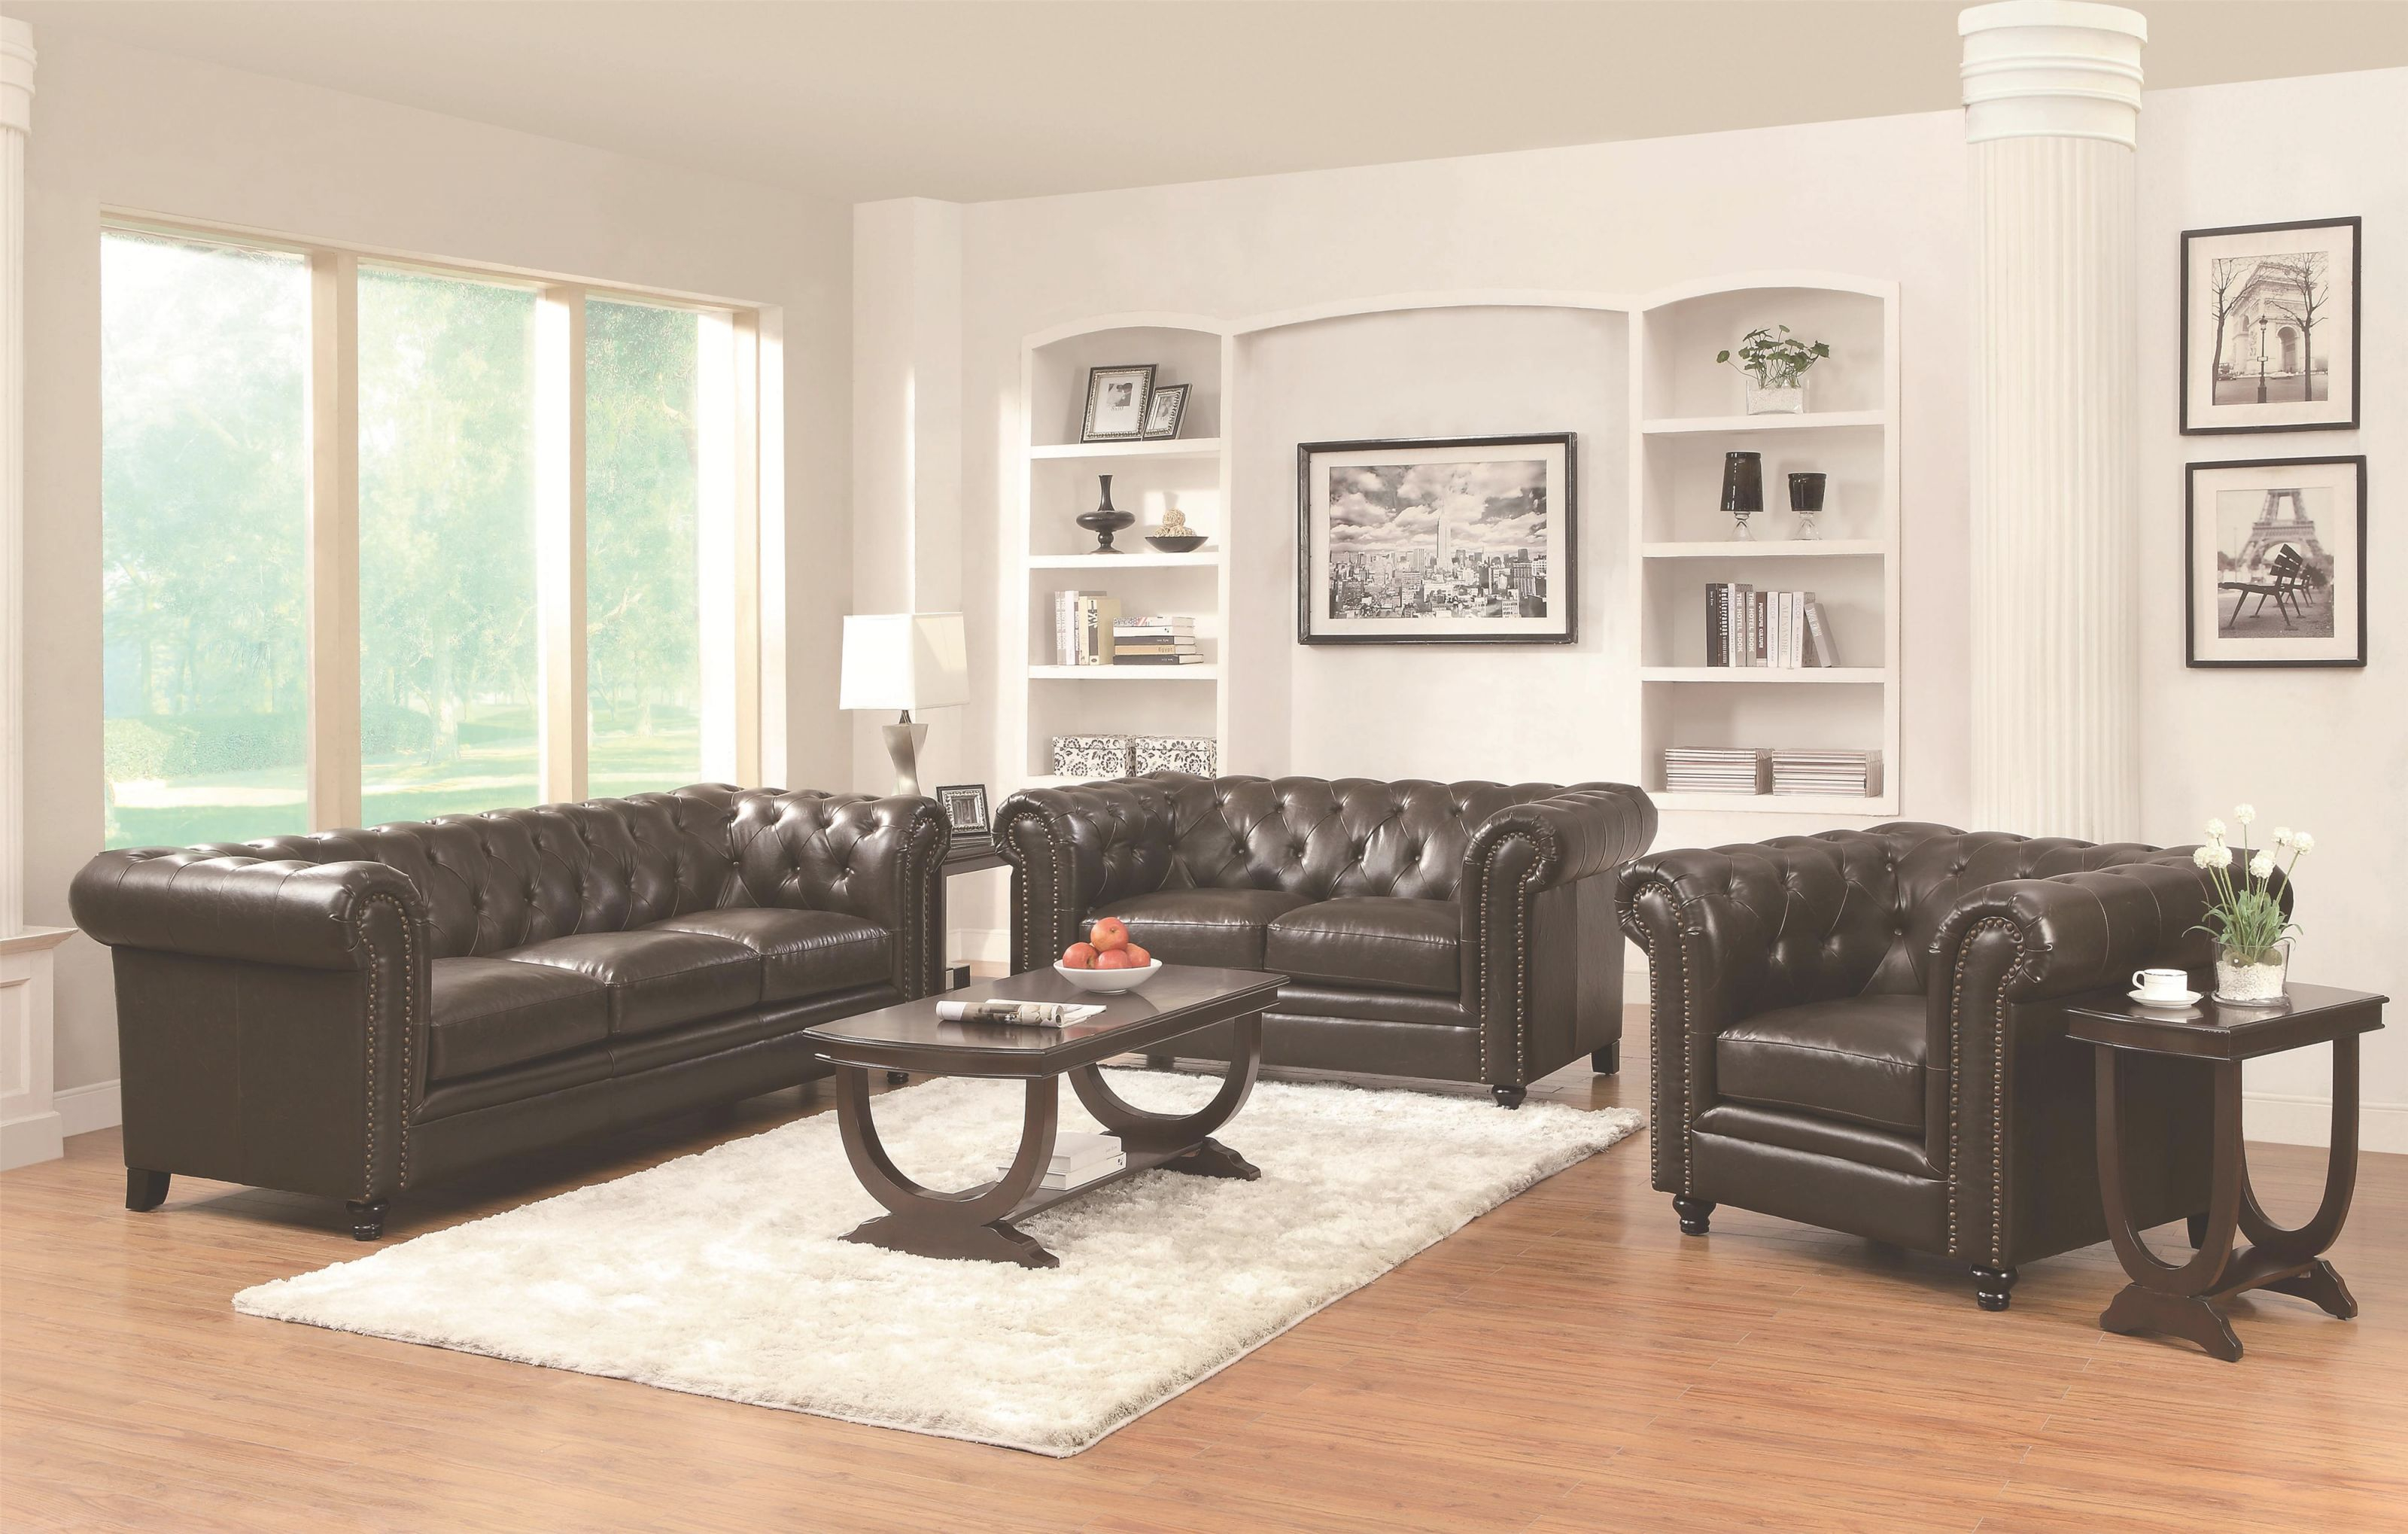 Traditional Living Room Set Co 504551 with regard to Traditional Living Room Furniture